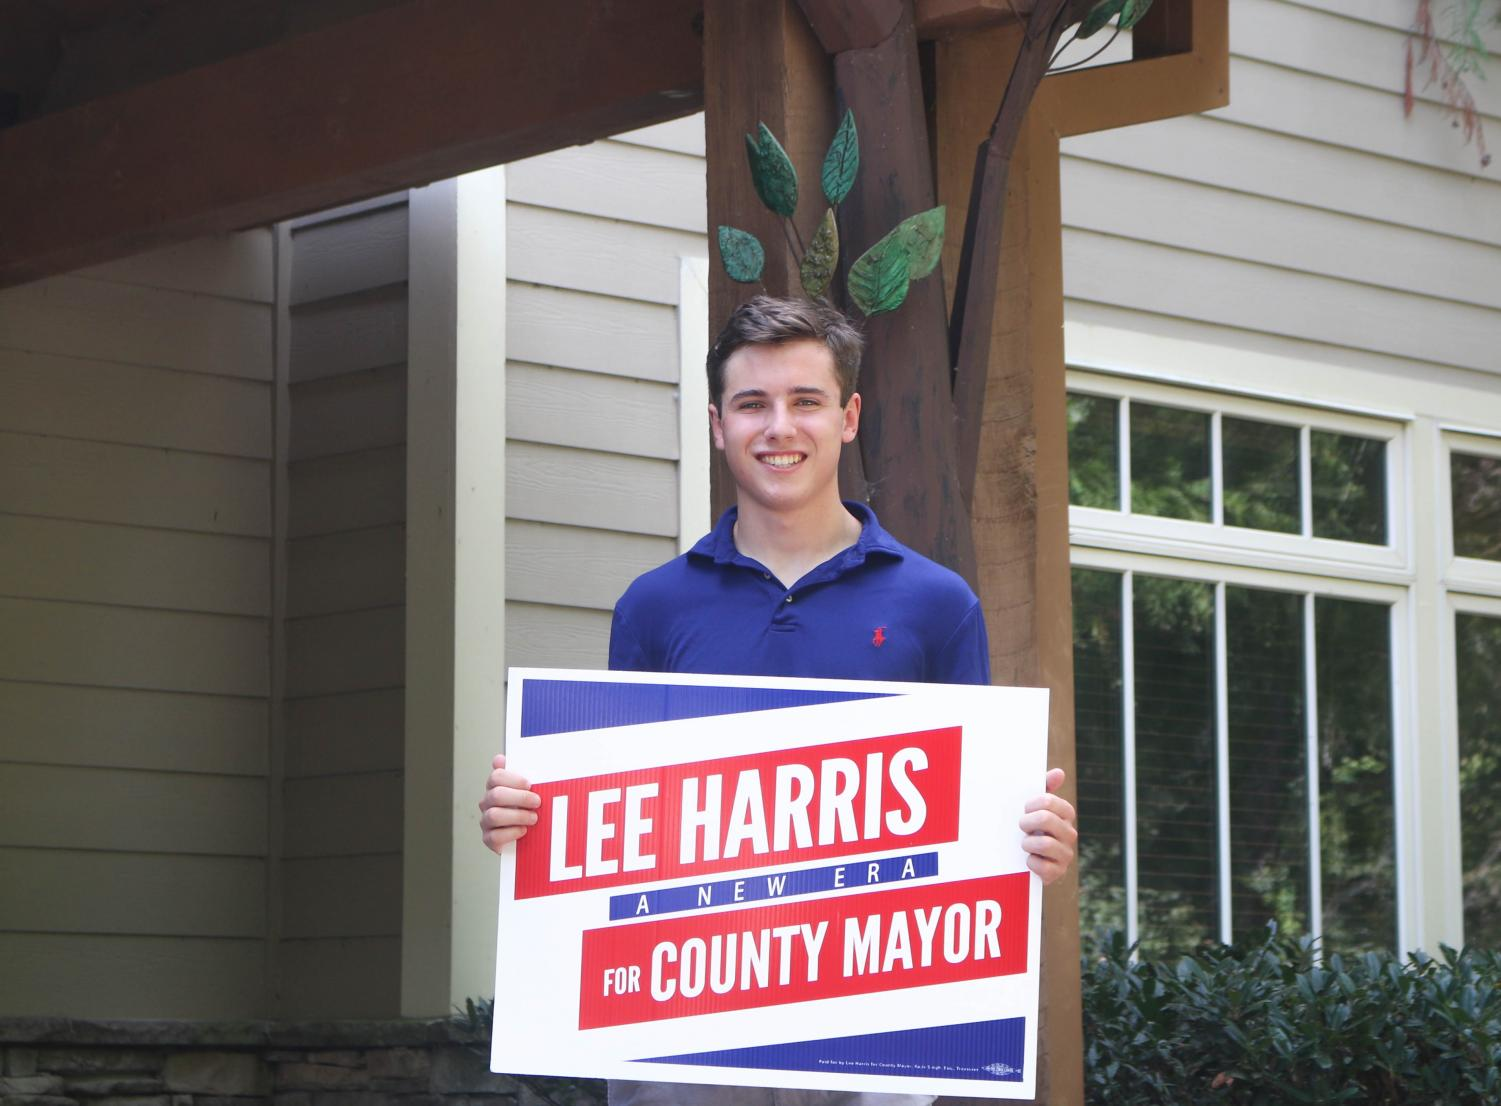 St. George's alumnus poses with a Lee Harris sign from the recent campaign. Doucette said the experience of working on the campaign helped him learn leadership skills.